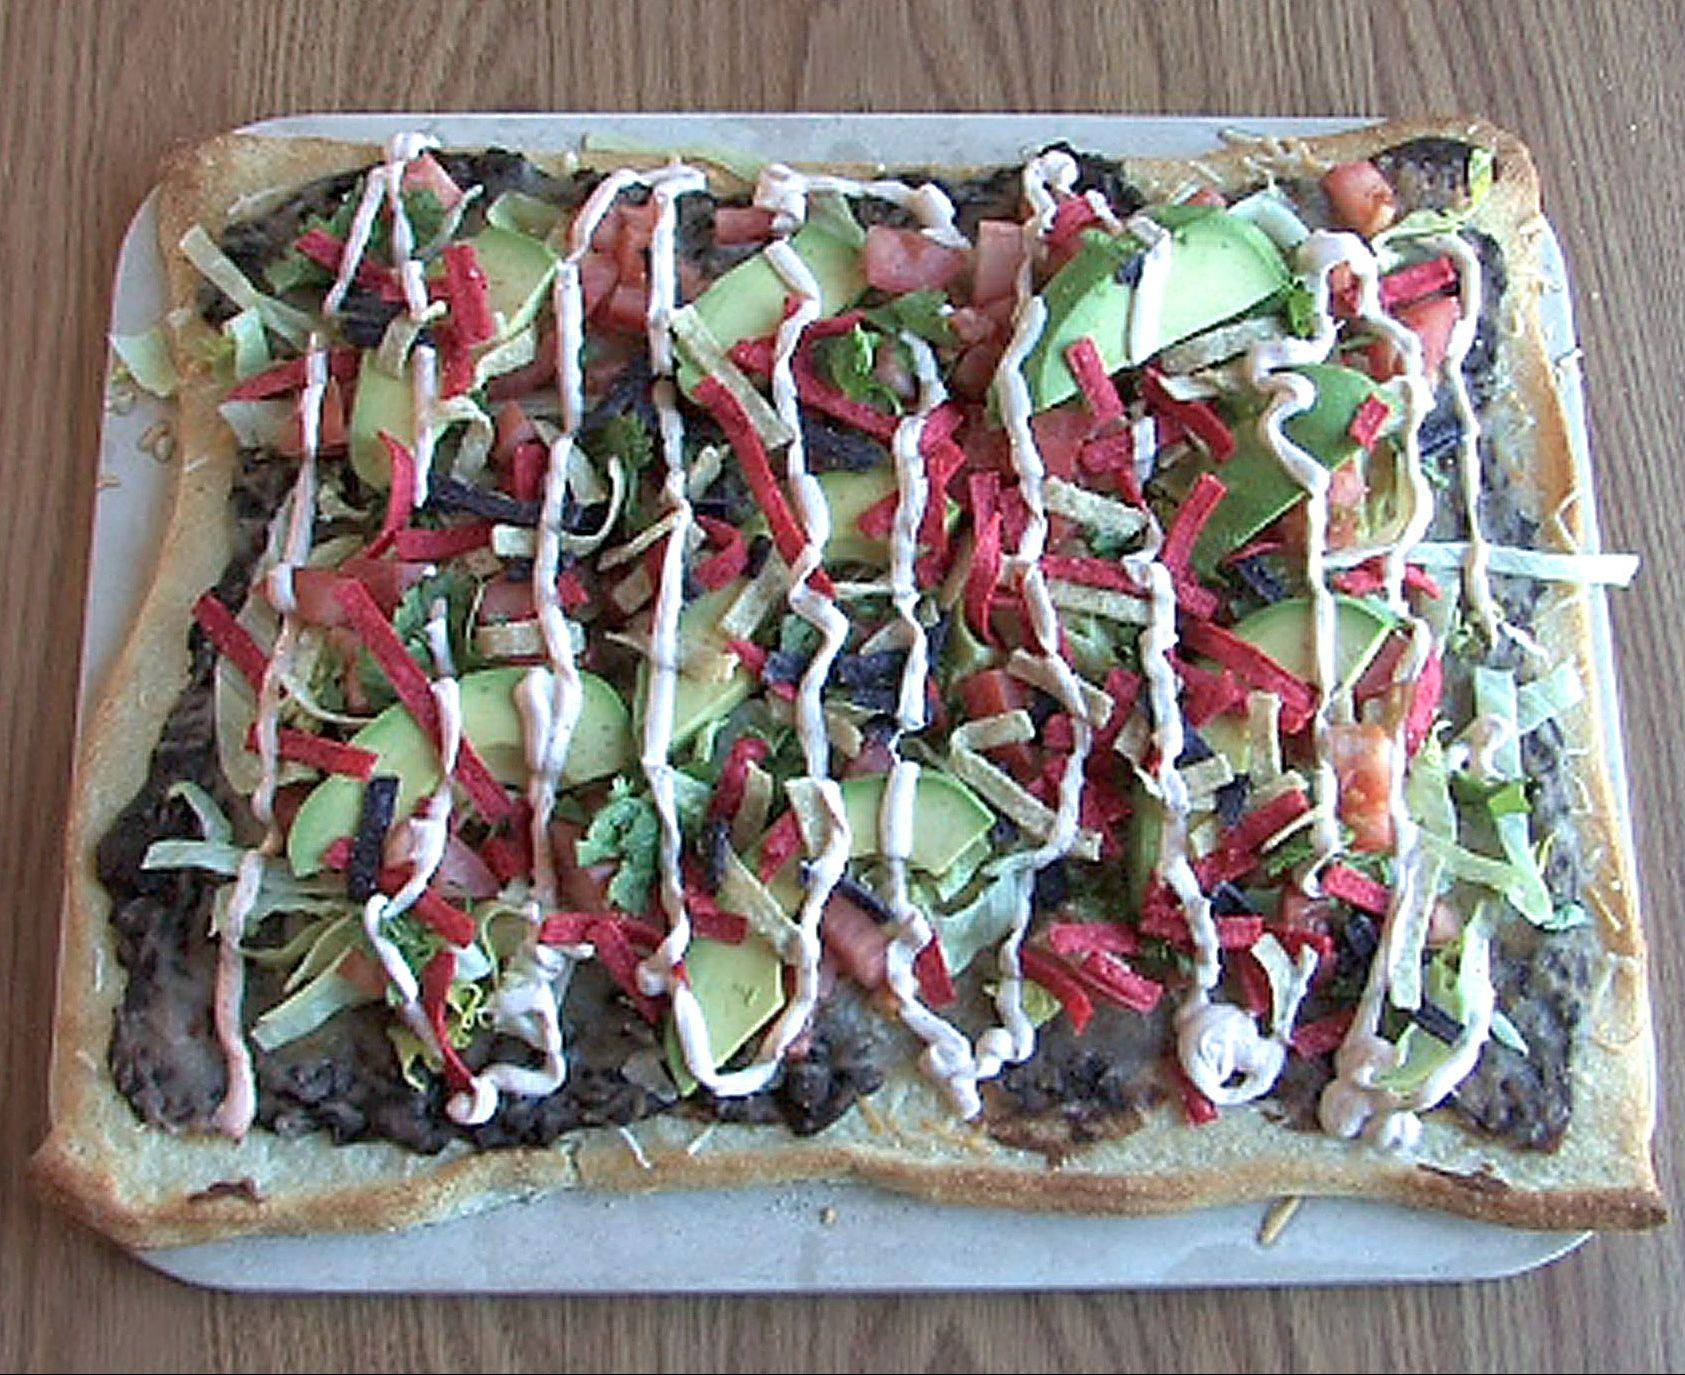 Taco Pizza made by Cooks of the Week Jennifer Loiseau and her 7-year-old daughter Maria in their Lake in the Hills kitchen. They produce an online video cooking blog called AmateurKitchen.tv